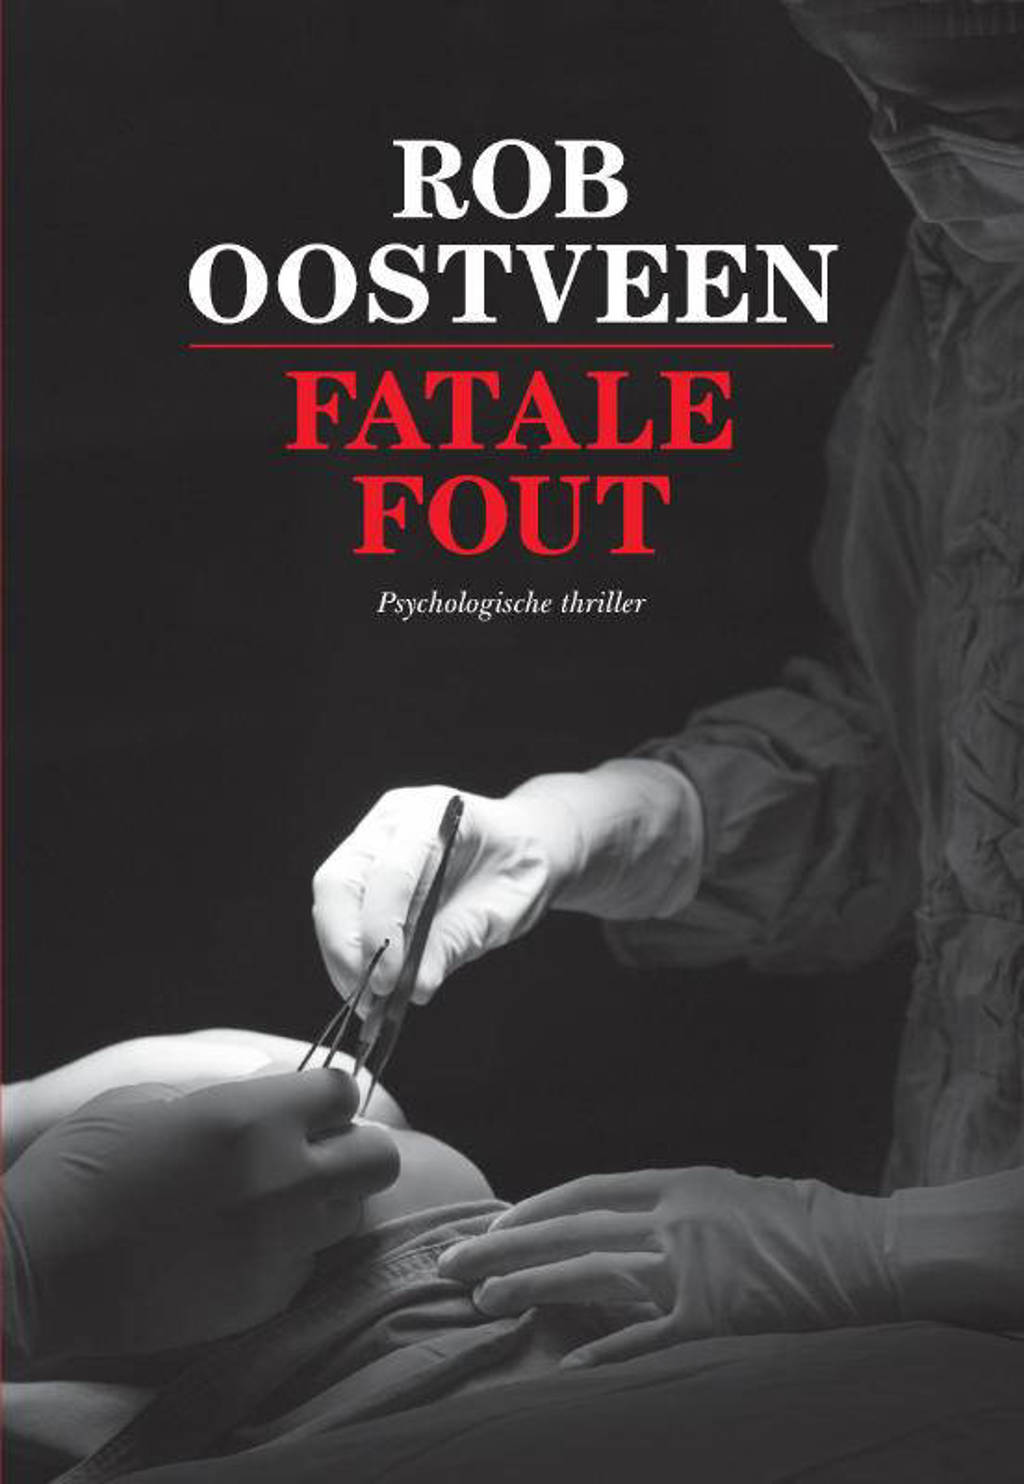 Fatale fout - Rob Oostveen